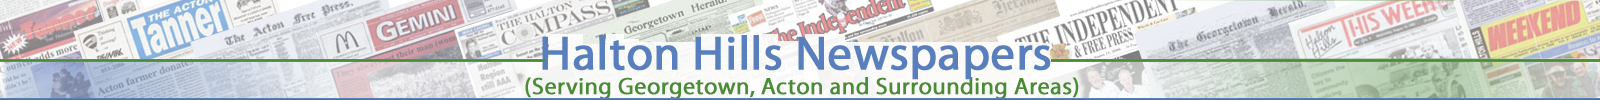 Halton Hills Newspapers